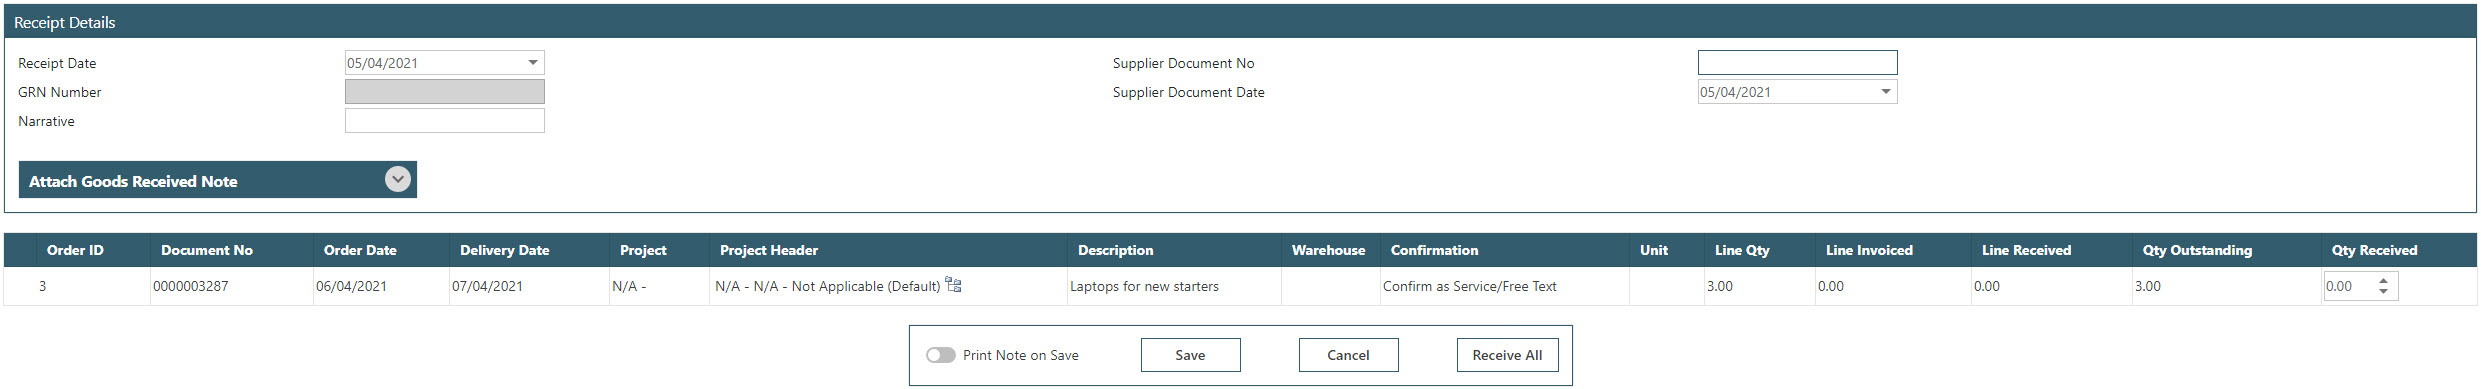 Sicon WAP Purchase Requisitions Help and User Guide - Requisition HUG Section 10.1 Image 1